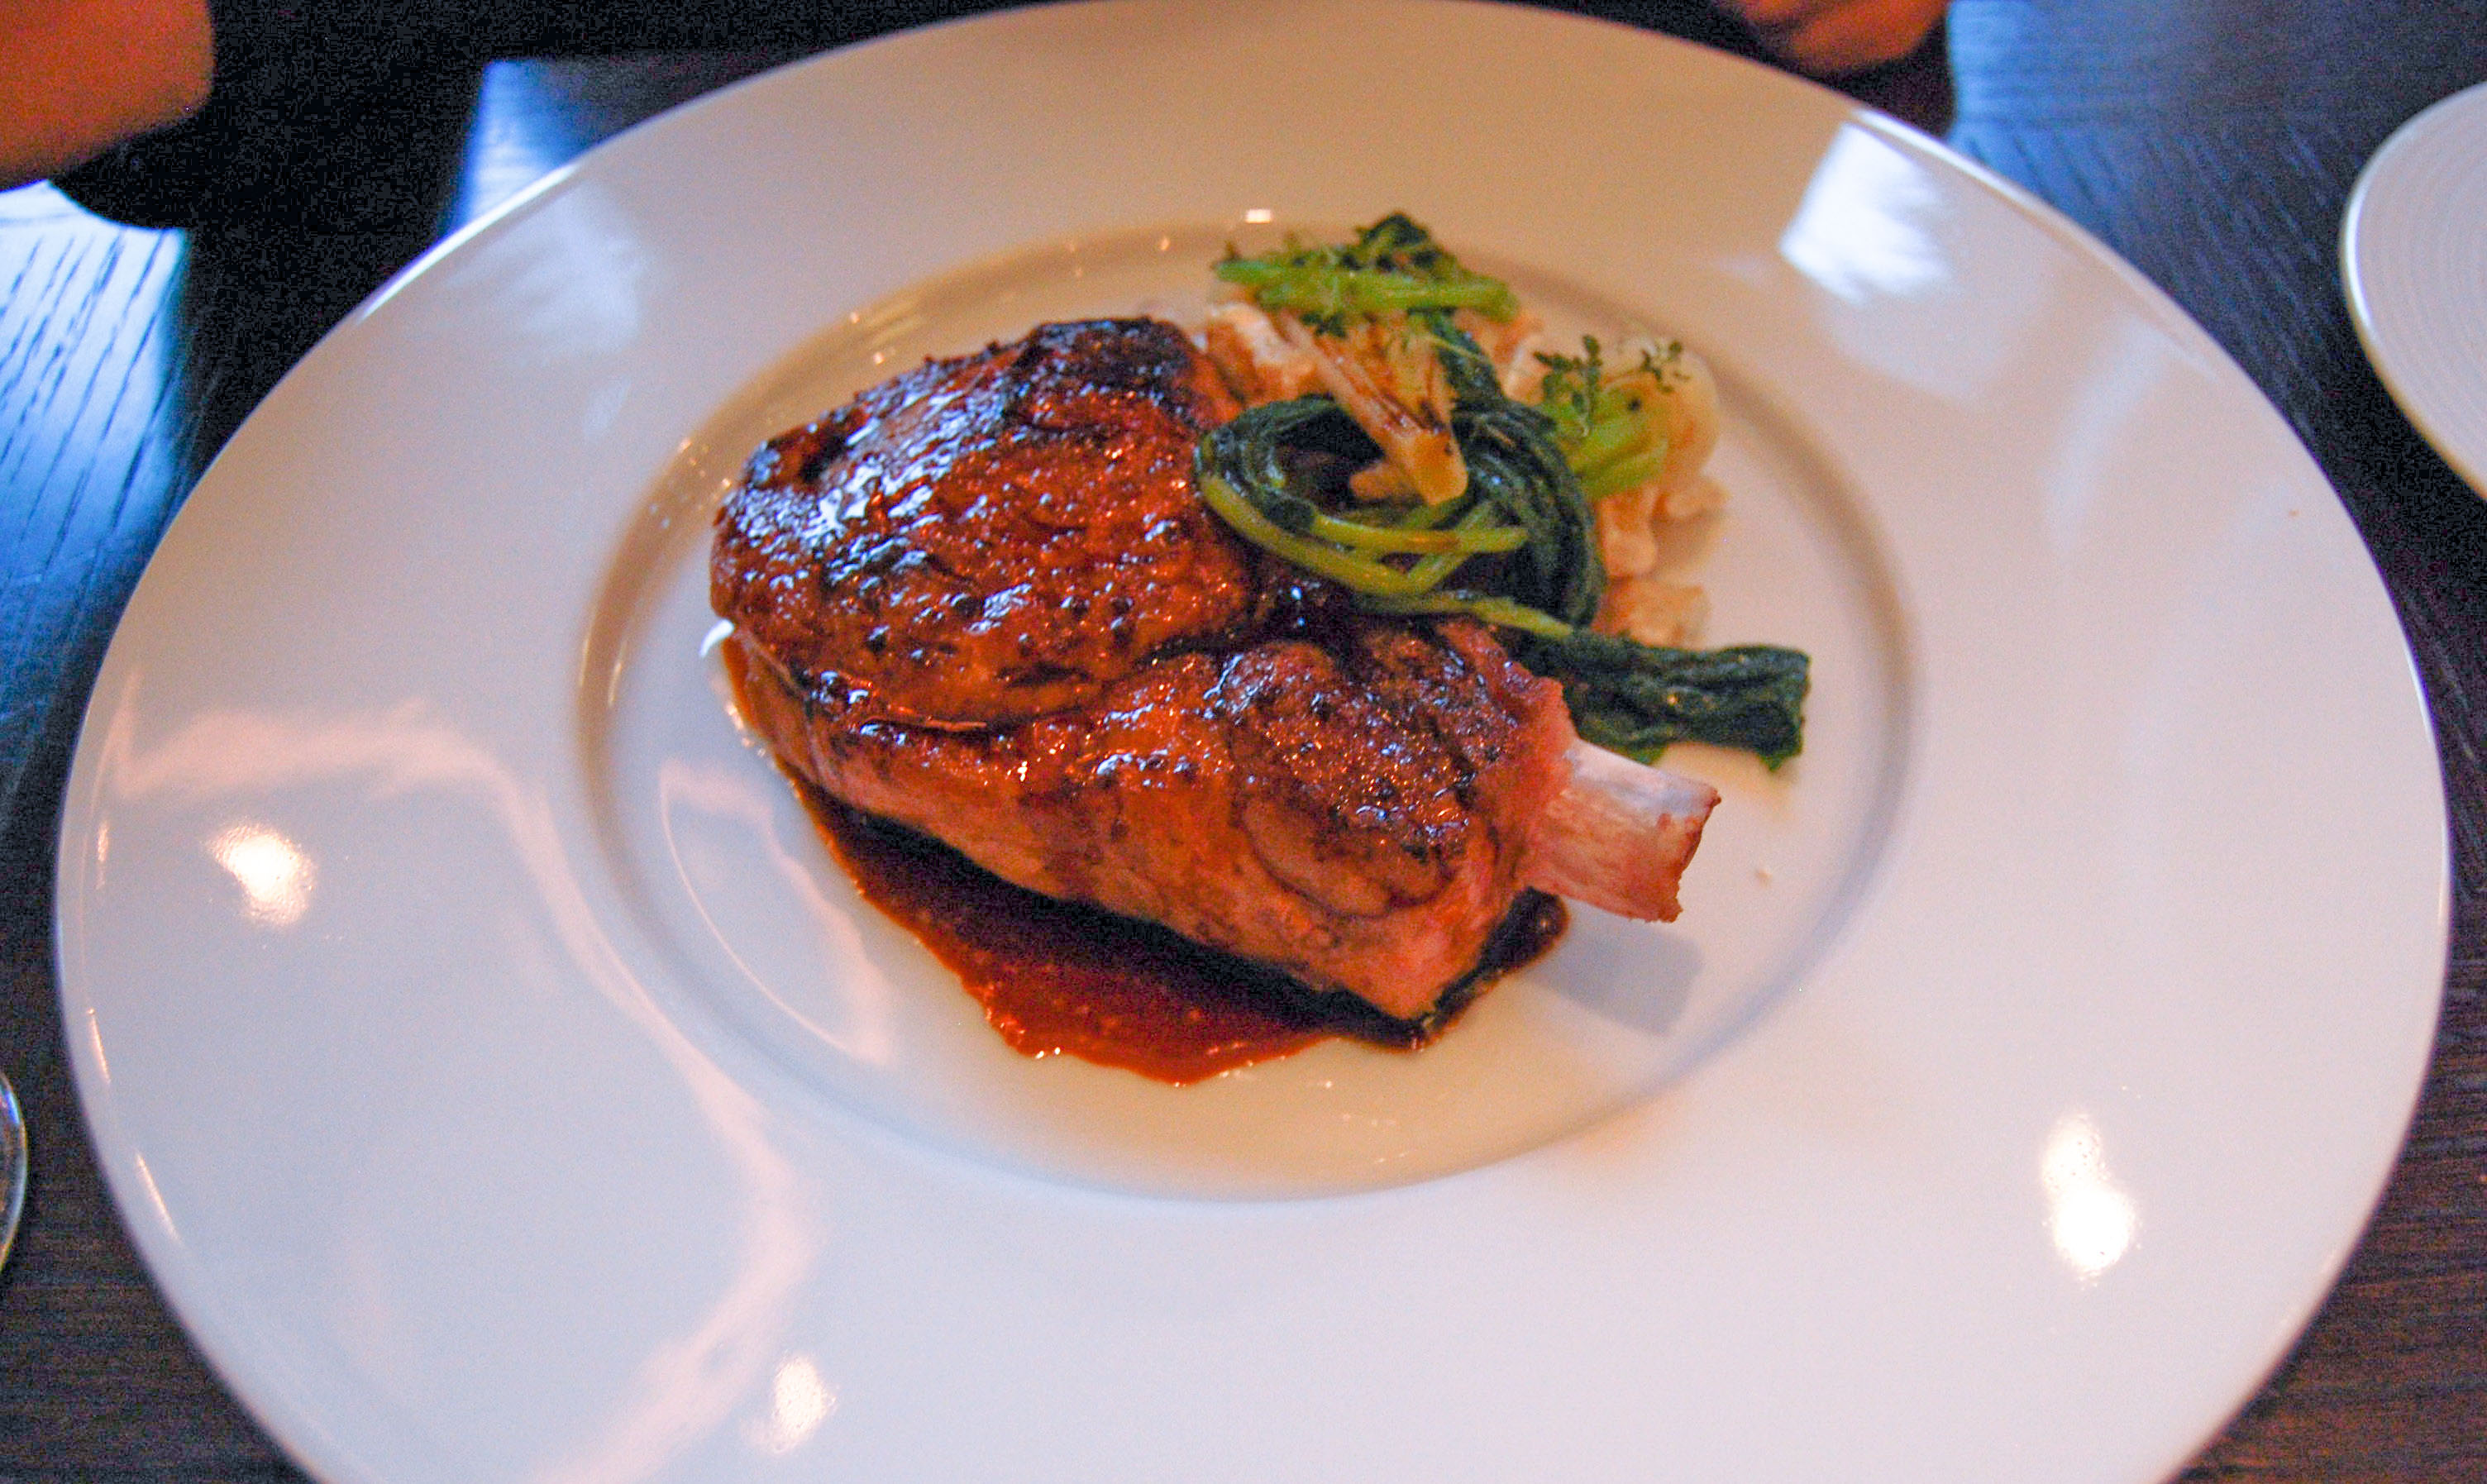 A pork chop on a plate